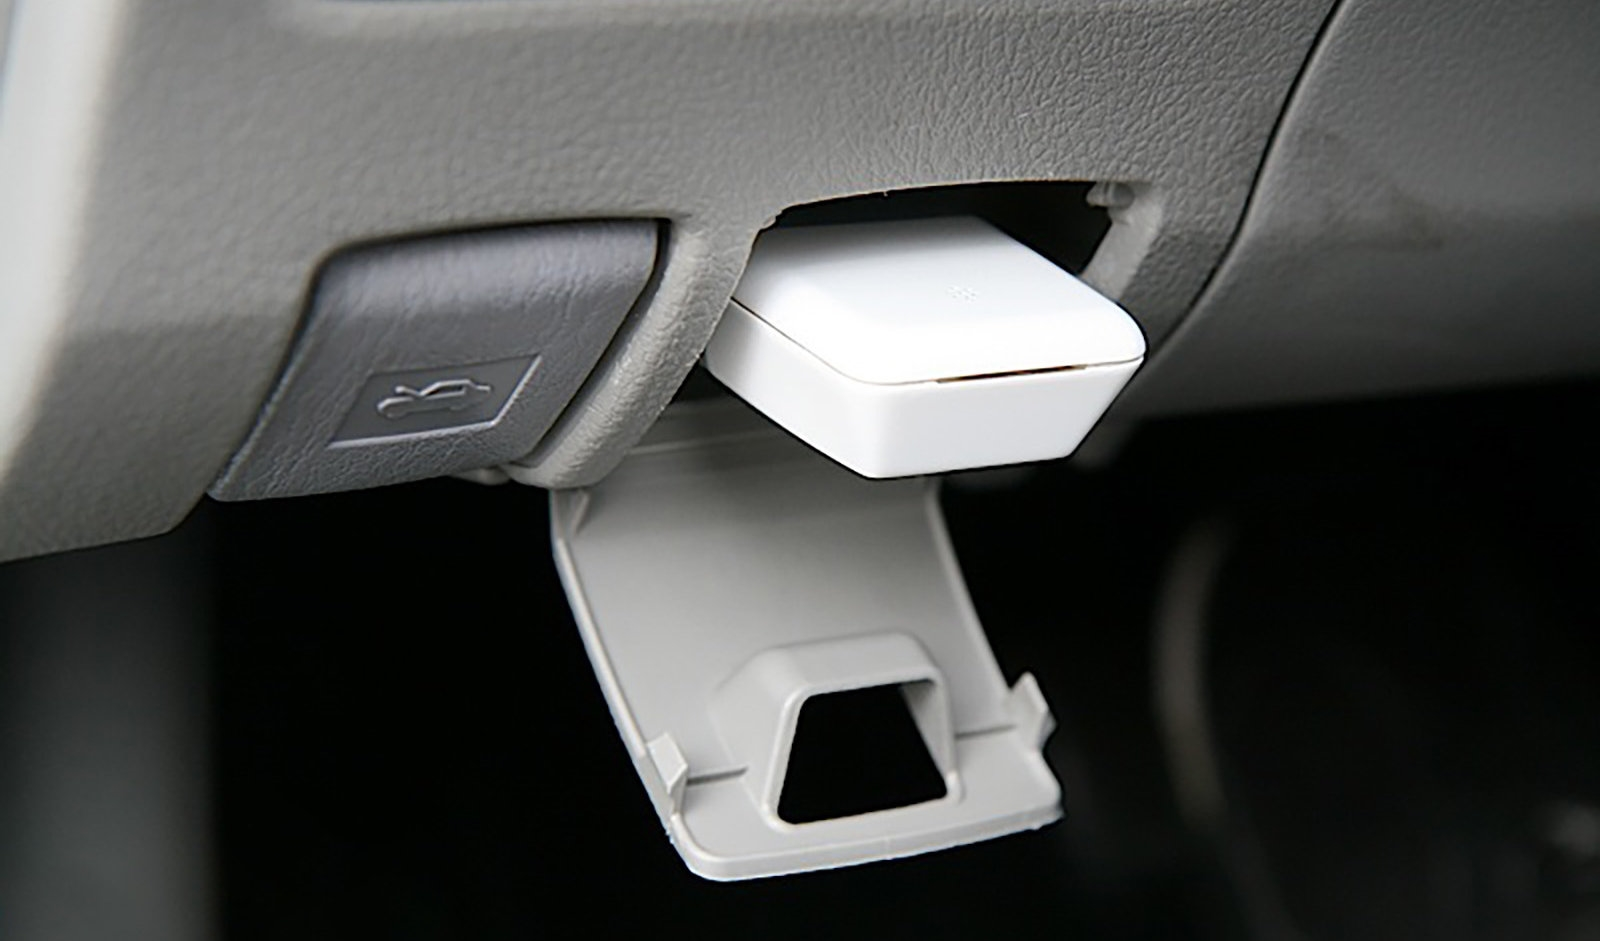 Automatic's original car adapters won't work after August 31st | DeviceDaily.com